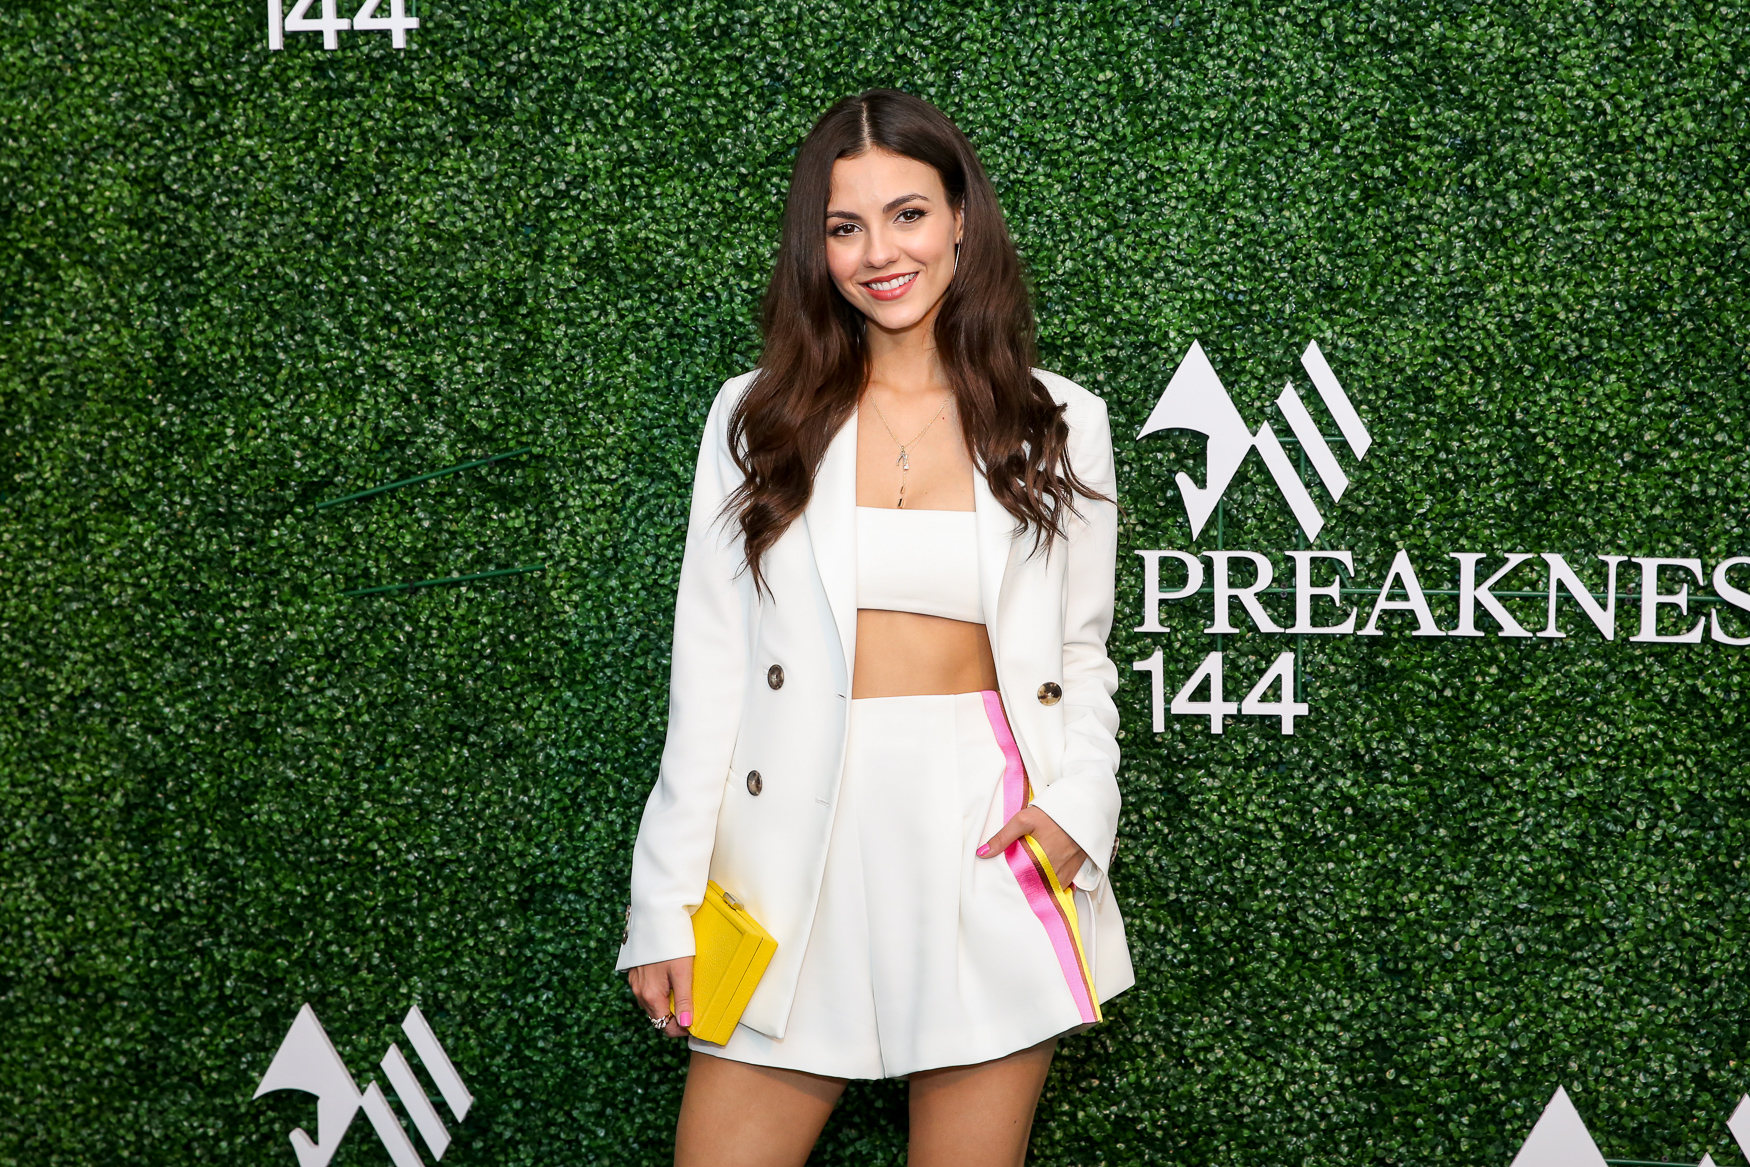 At Preakness, Victoria Justice pumped up the color with a bright yellow clutch in addition to her pink streak.{ }(Amanda Andrade-Rhoades/DC Refined)